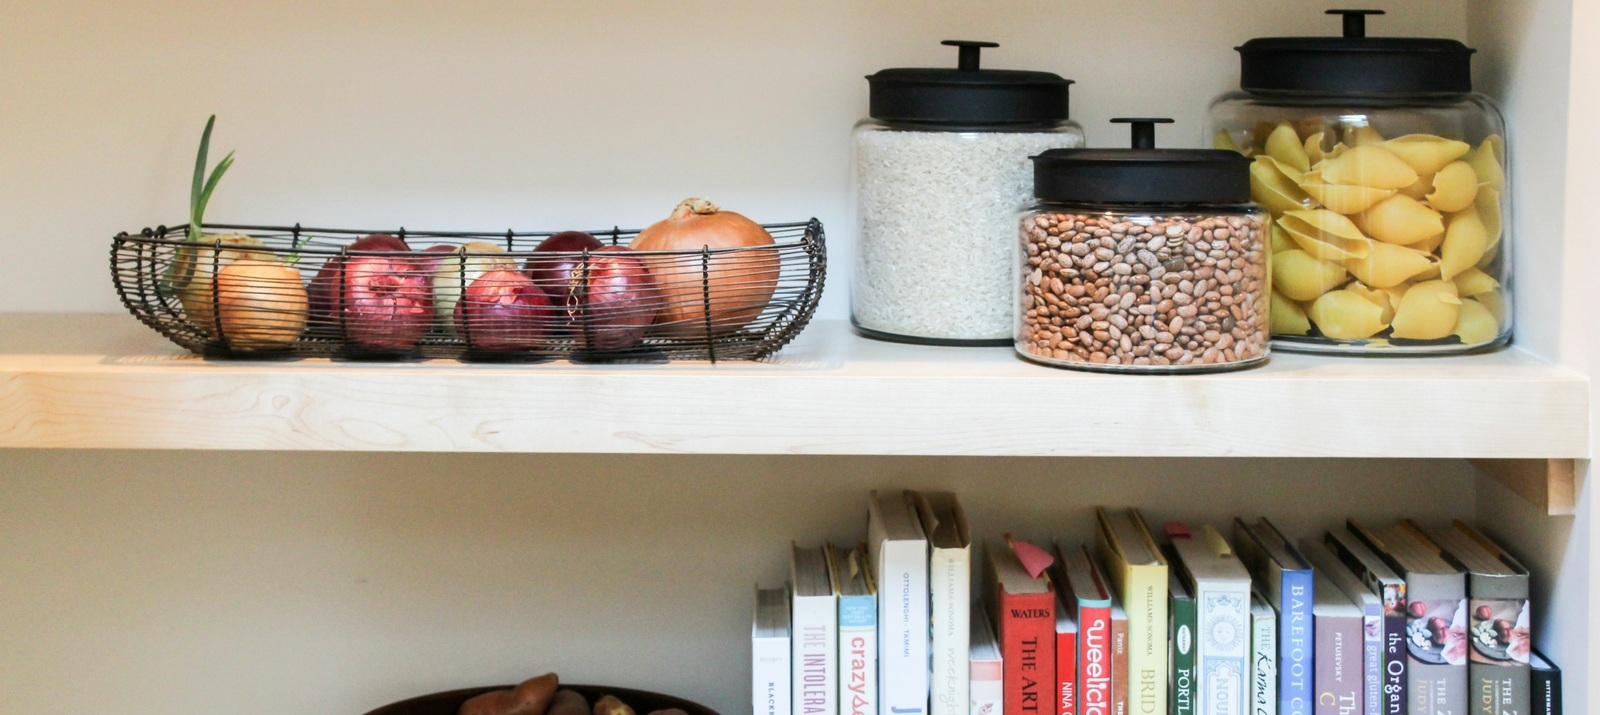 eco-friendly pantry organization hacks, ideas, and tips: reusable glass jars, baskets, and more